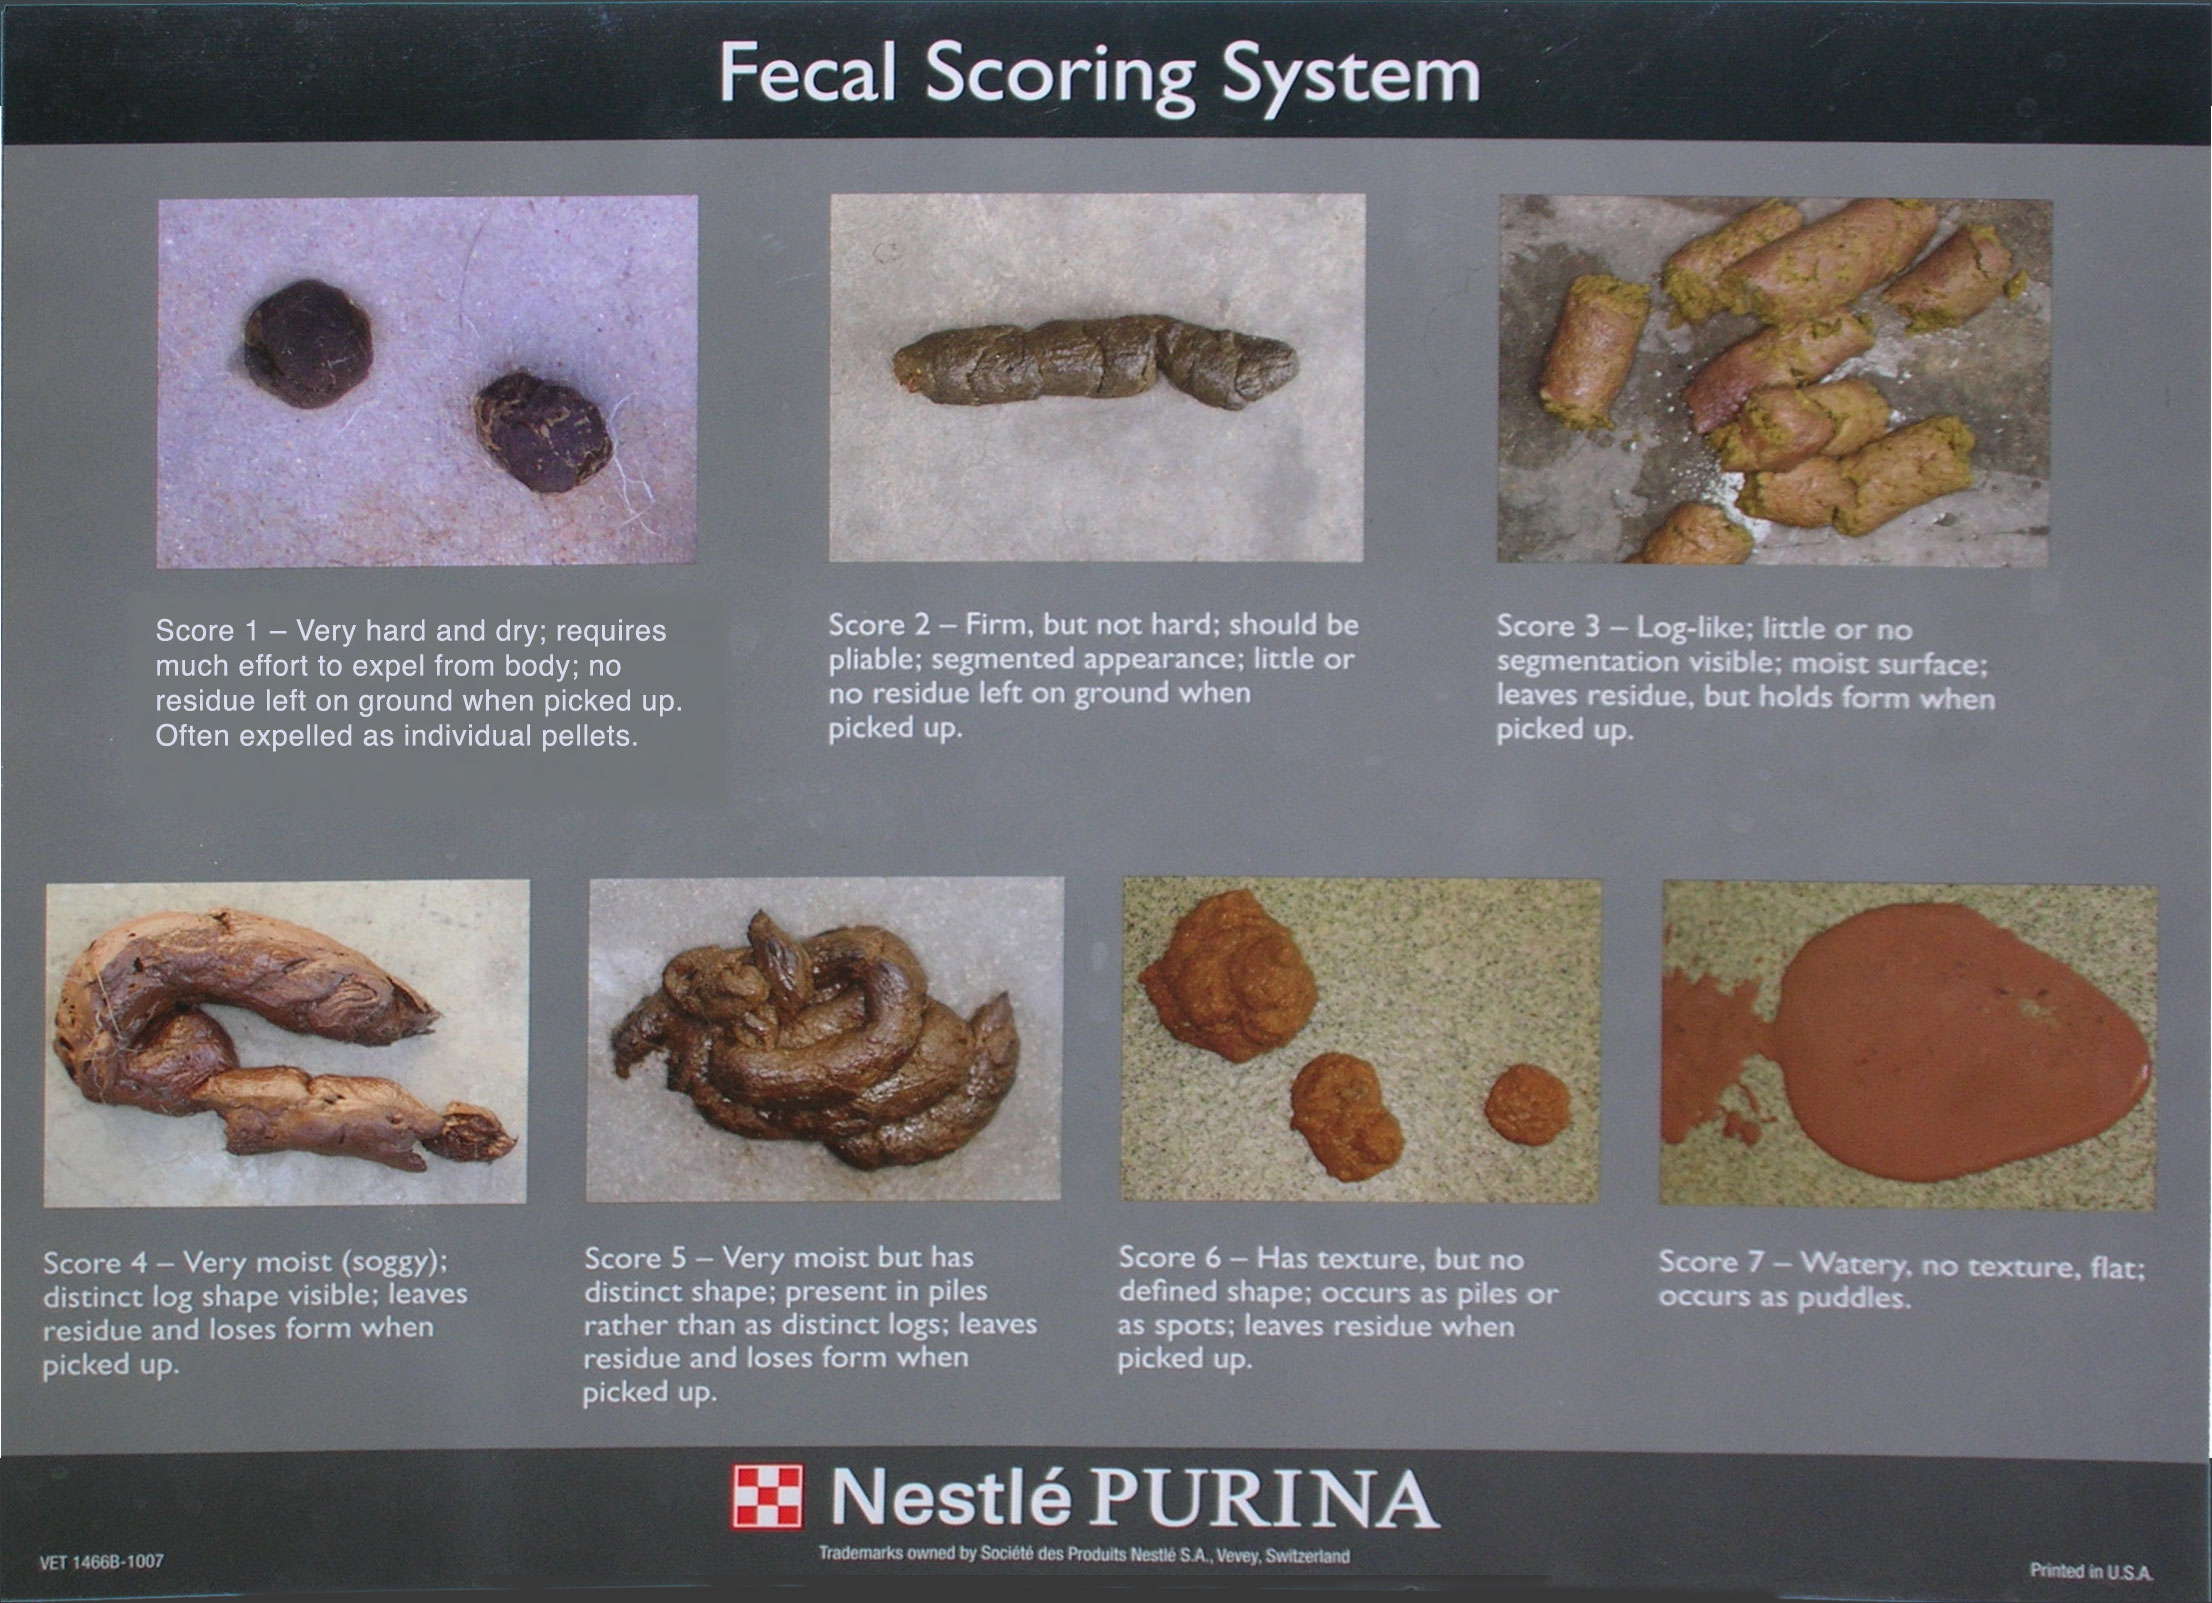 What's your dog's poop score?